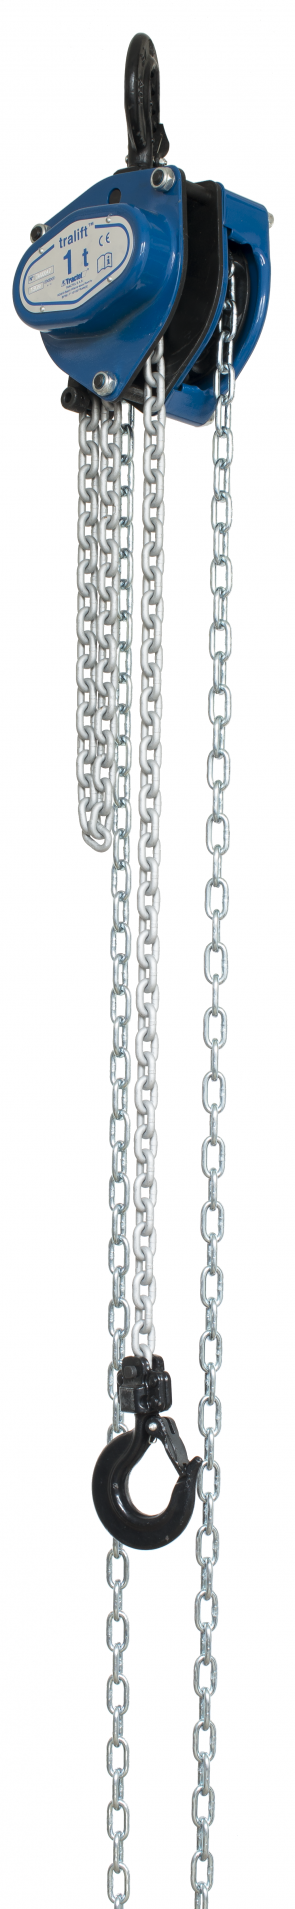 250kg Tralift Chain Block with 3m Corolim Chain